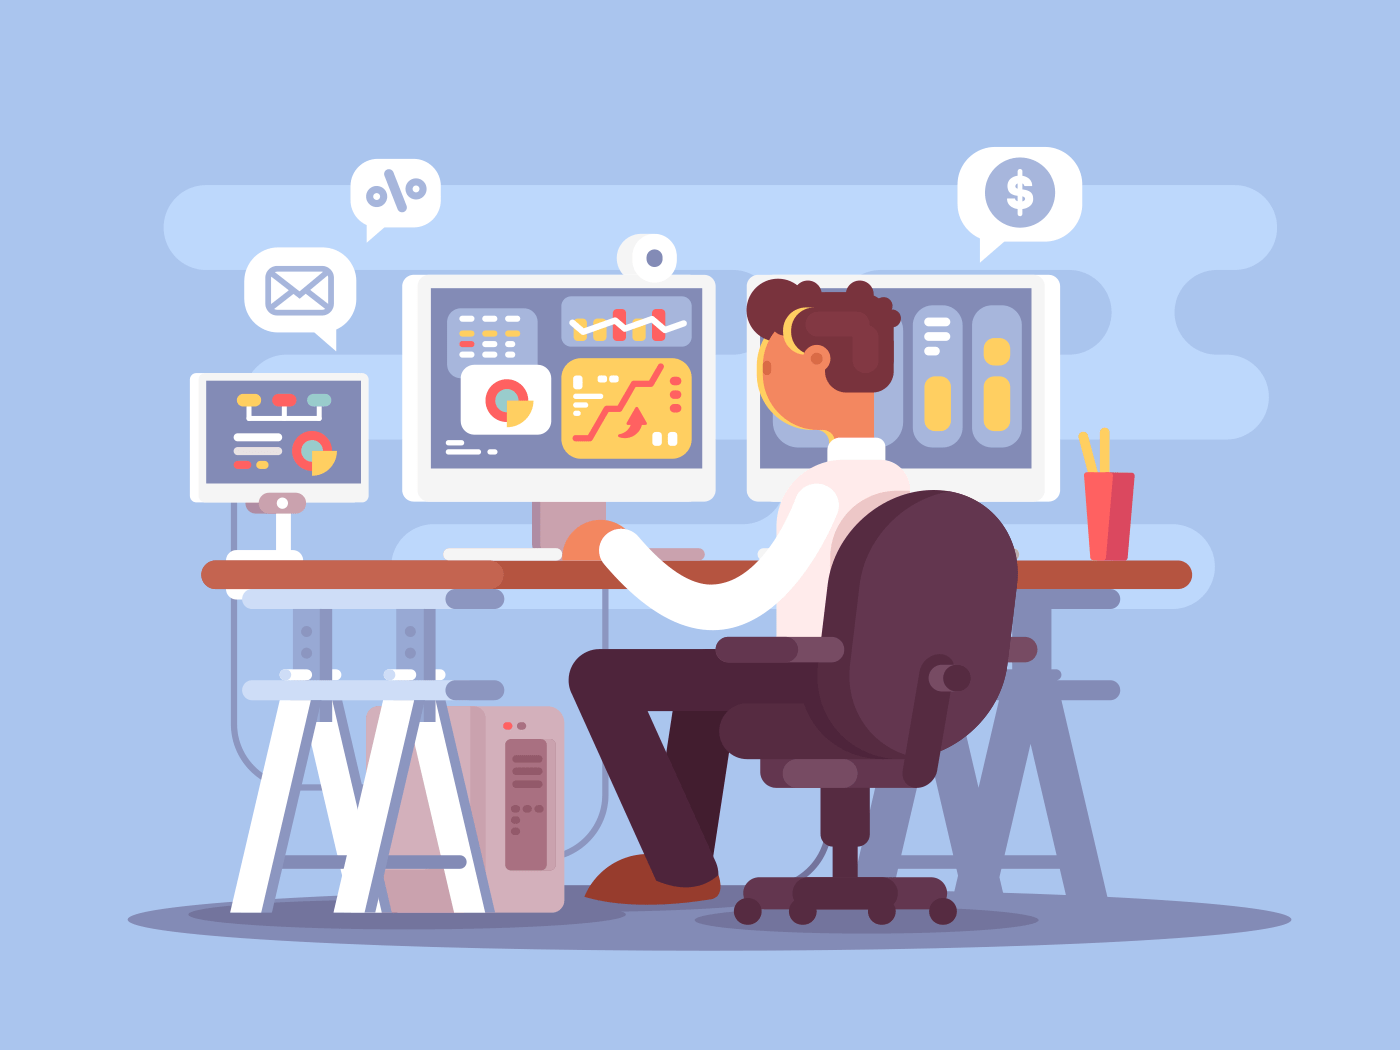 Stock trader sits in armchair illustration